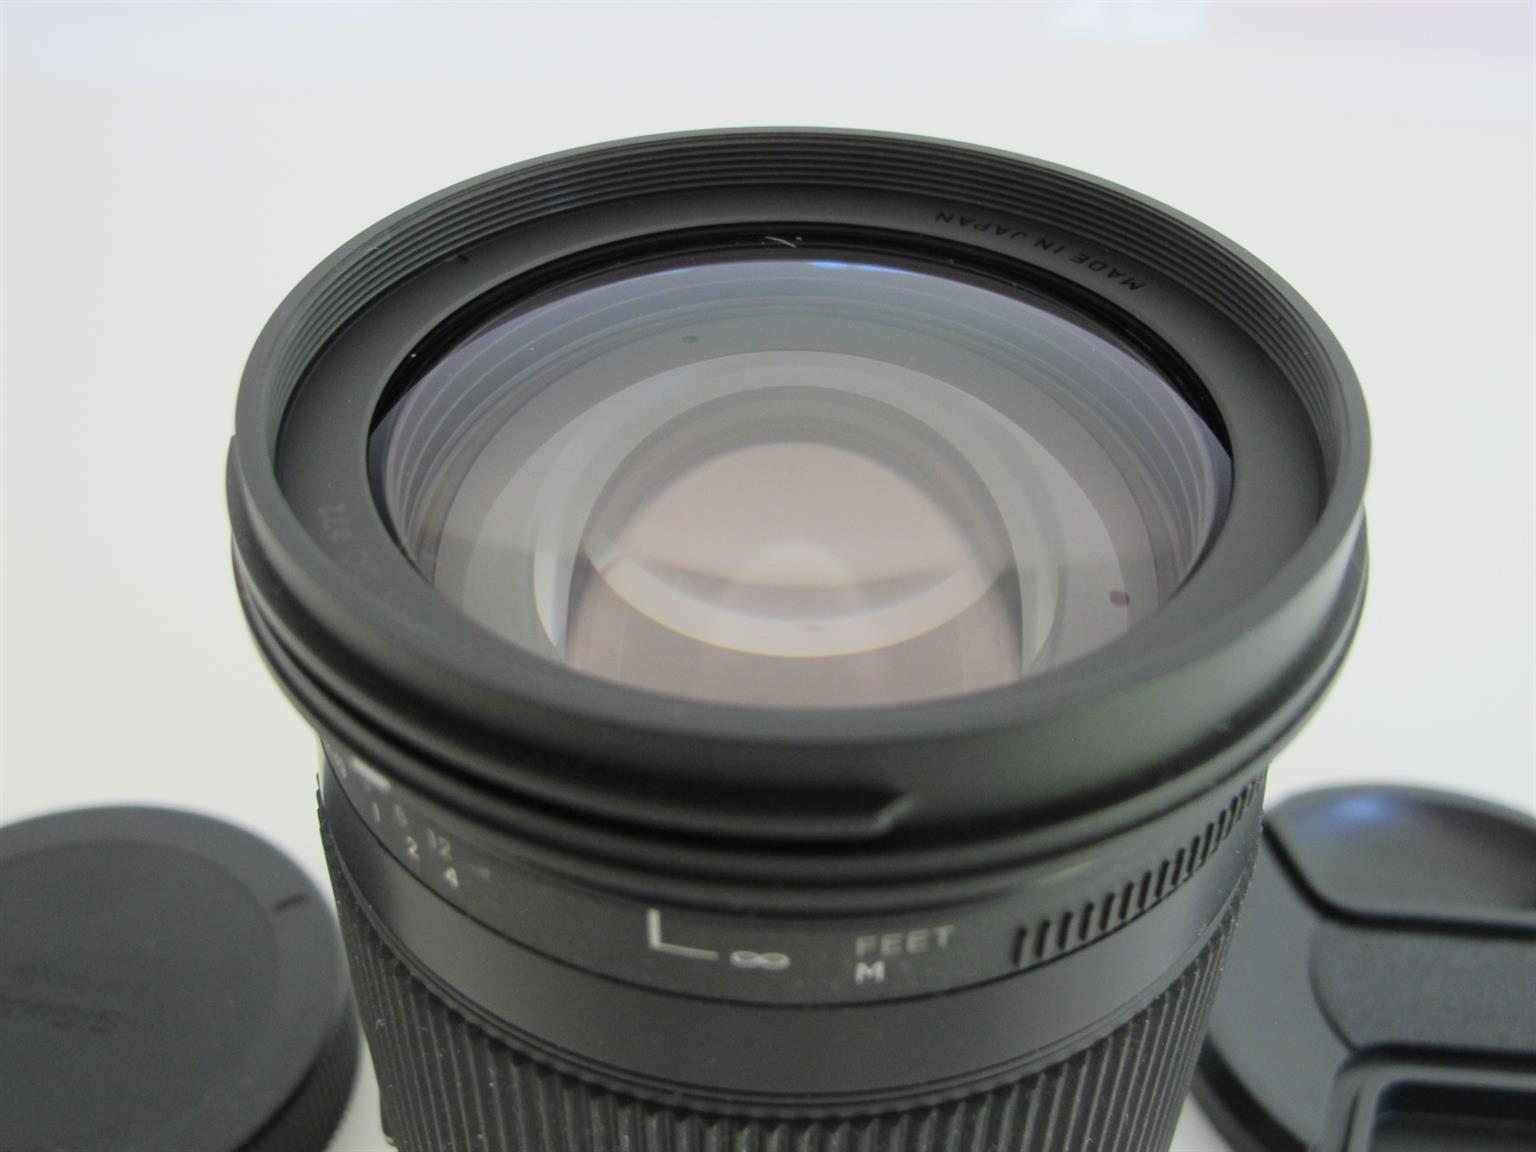 Sigma 18-300mm f/3.5-6.3 DC Macro OS HSM for Canon SLR LIKE NEW